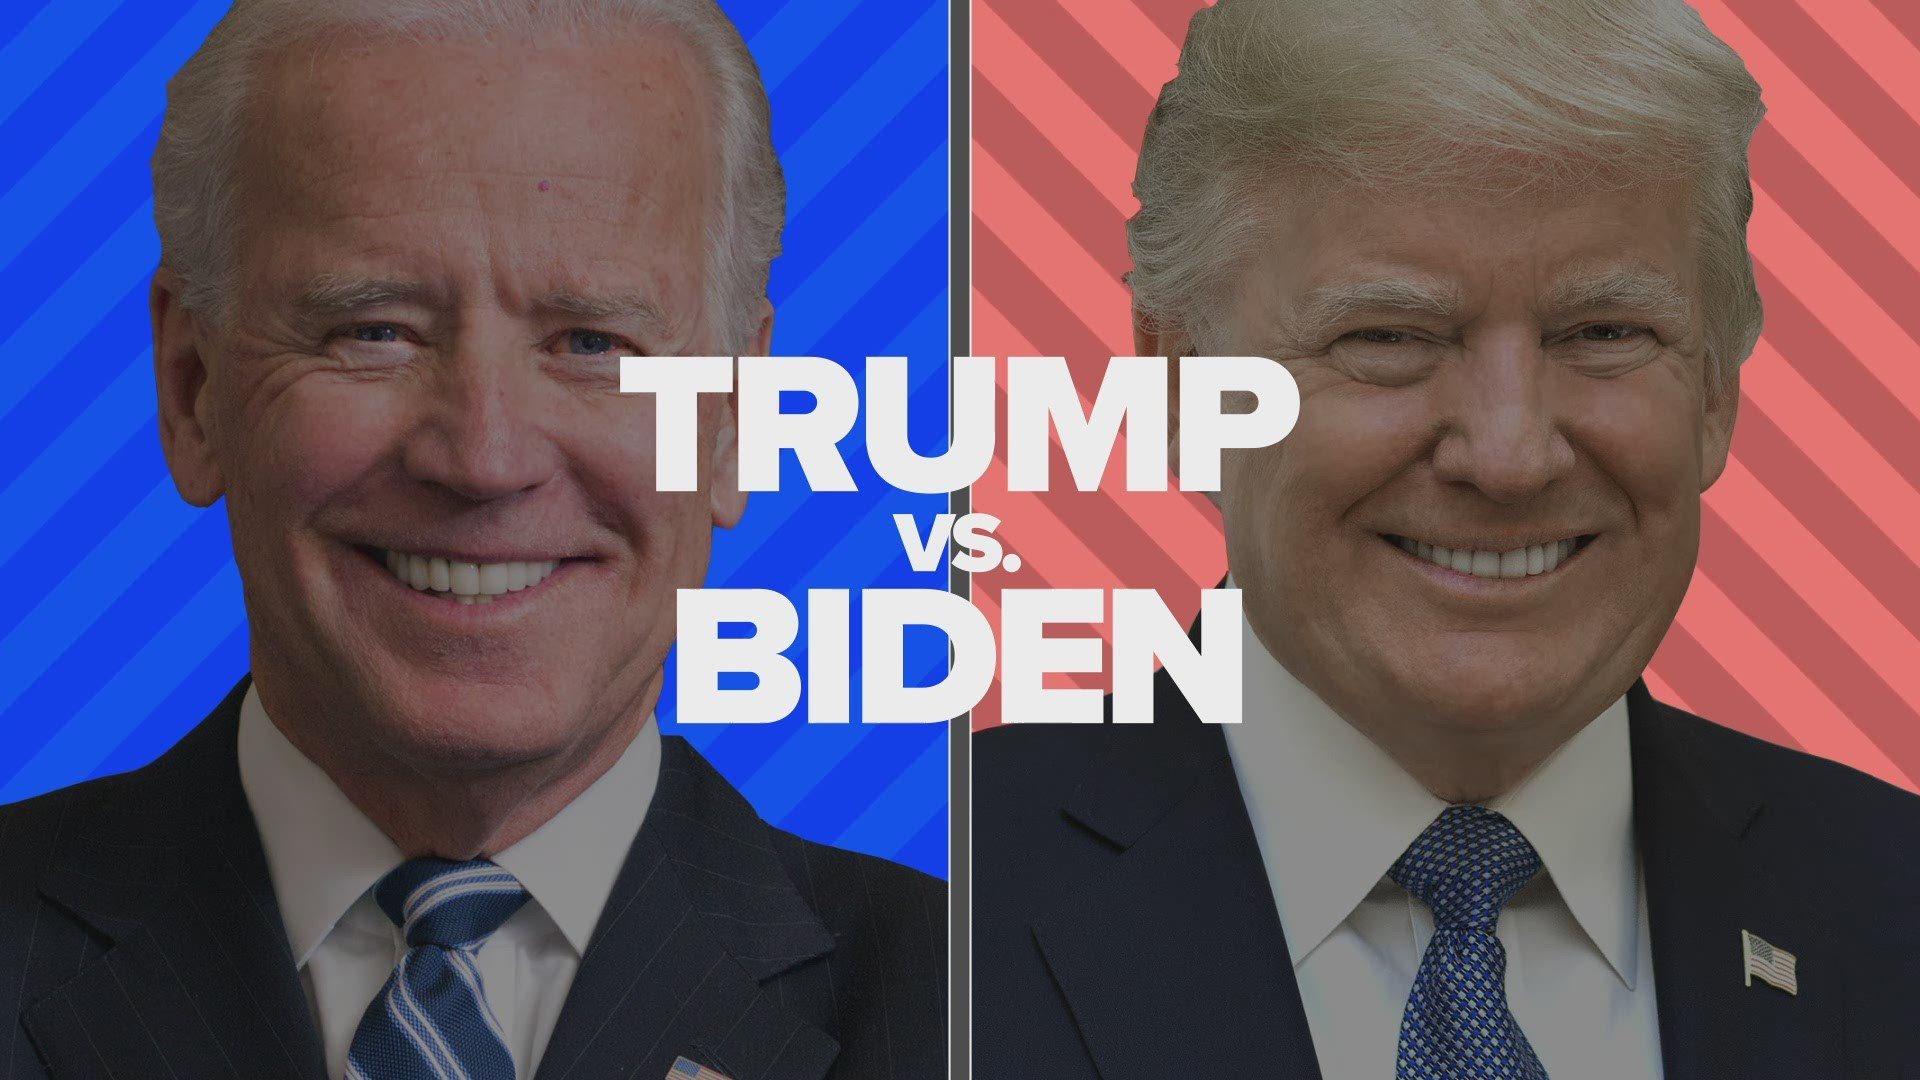 Dixville Notch casts first Trump vs. Biden Election Day votes | 10tv.com